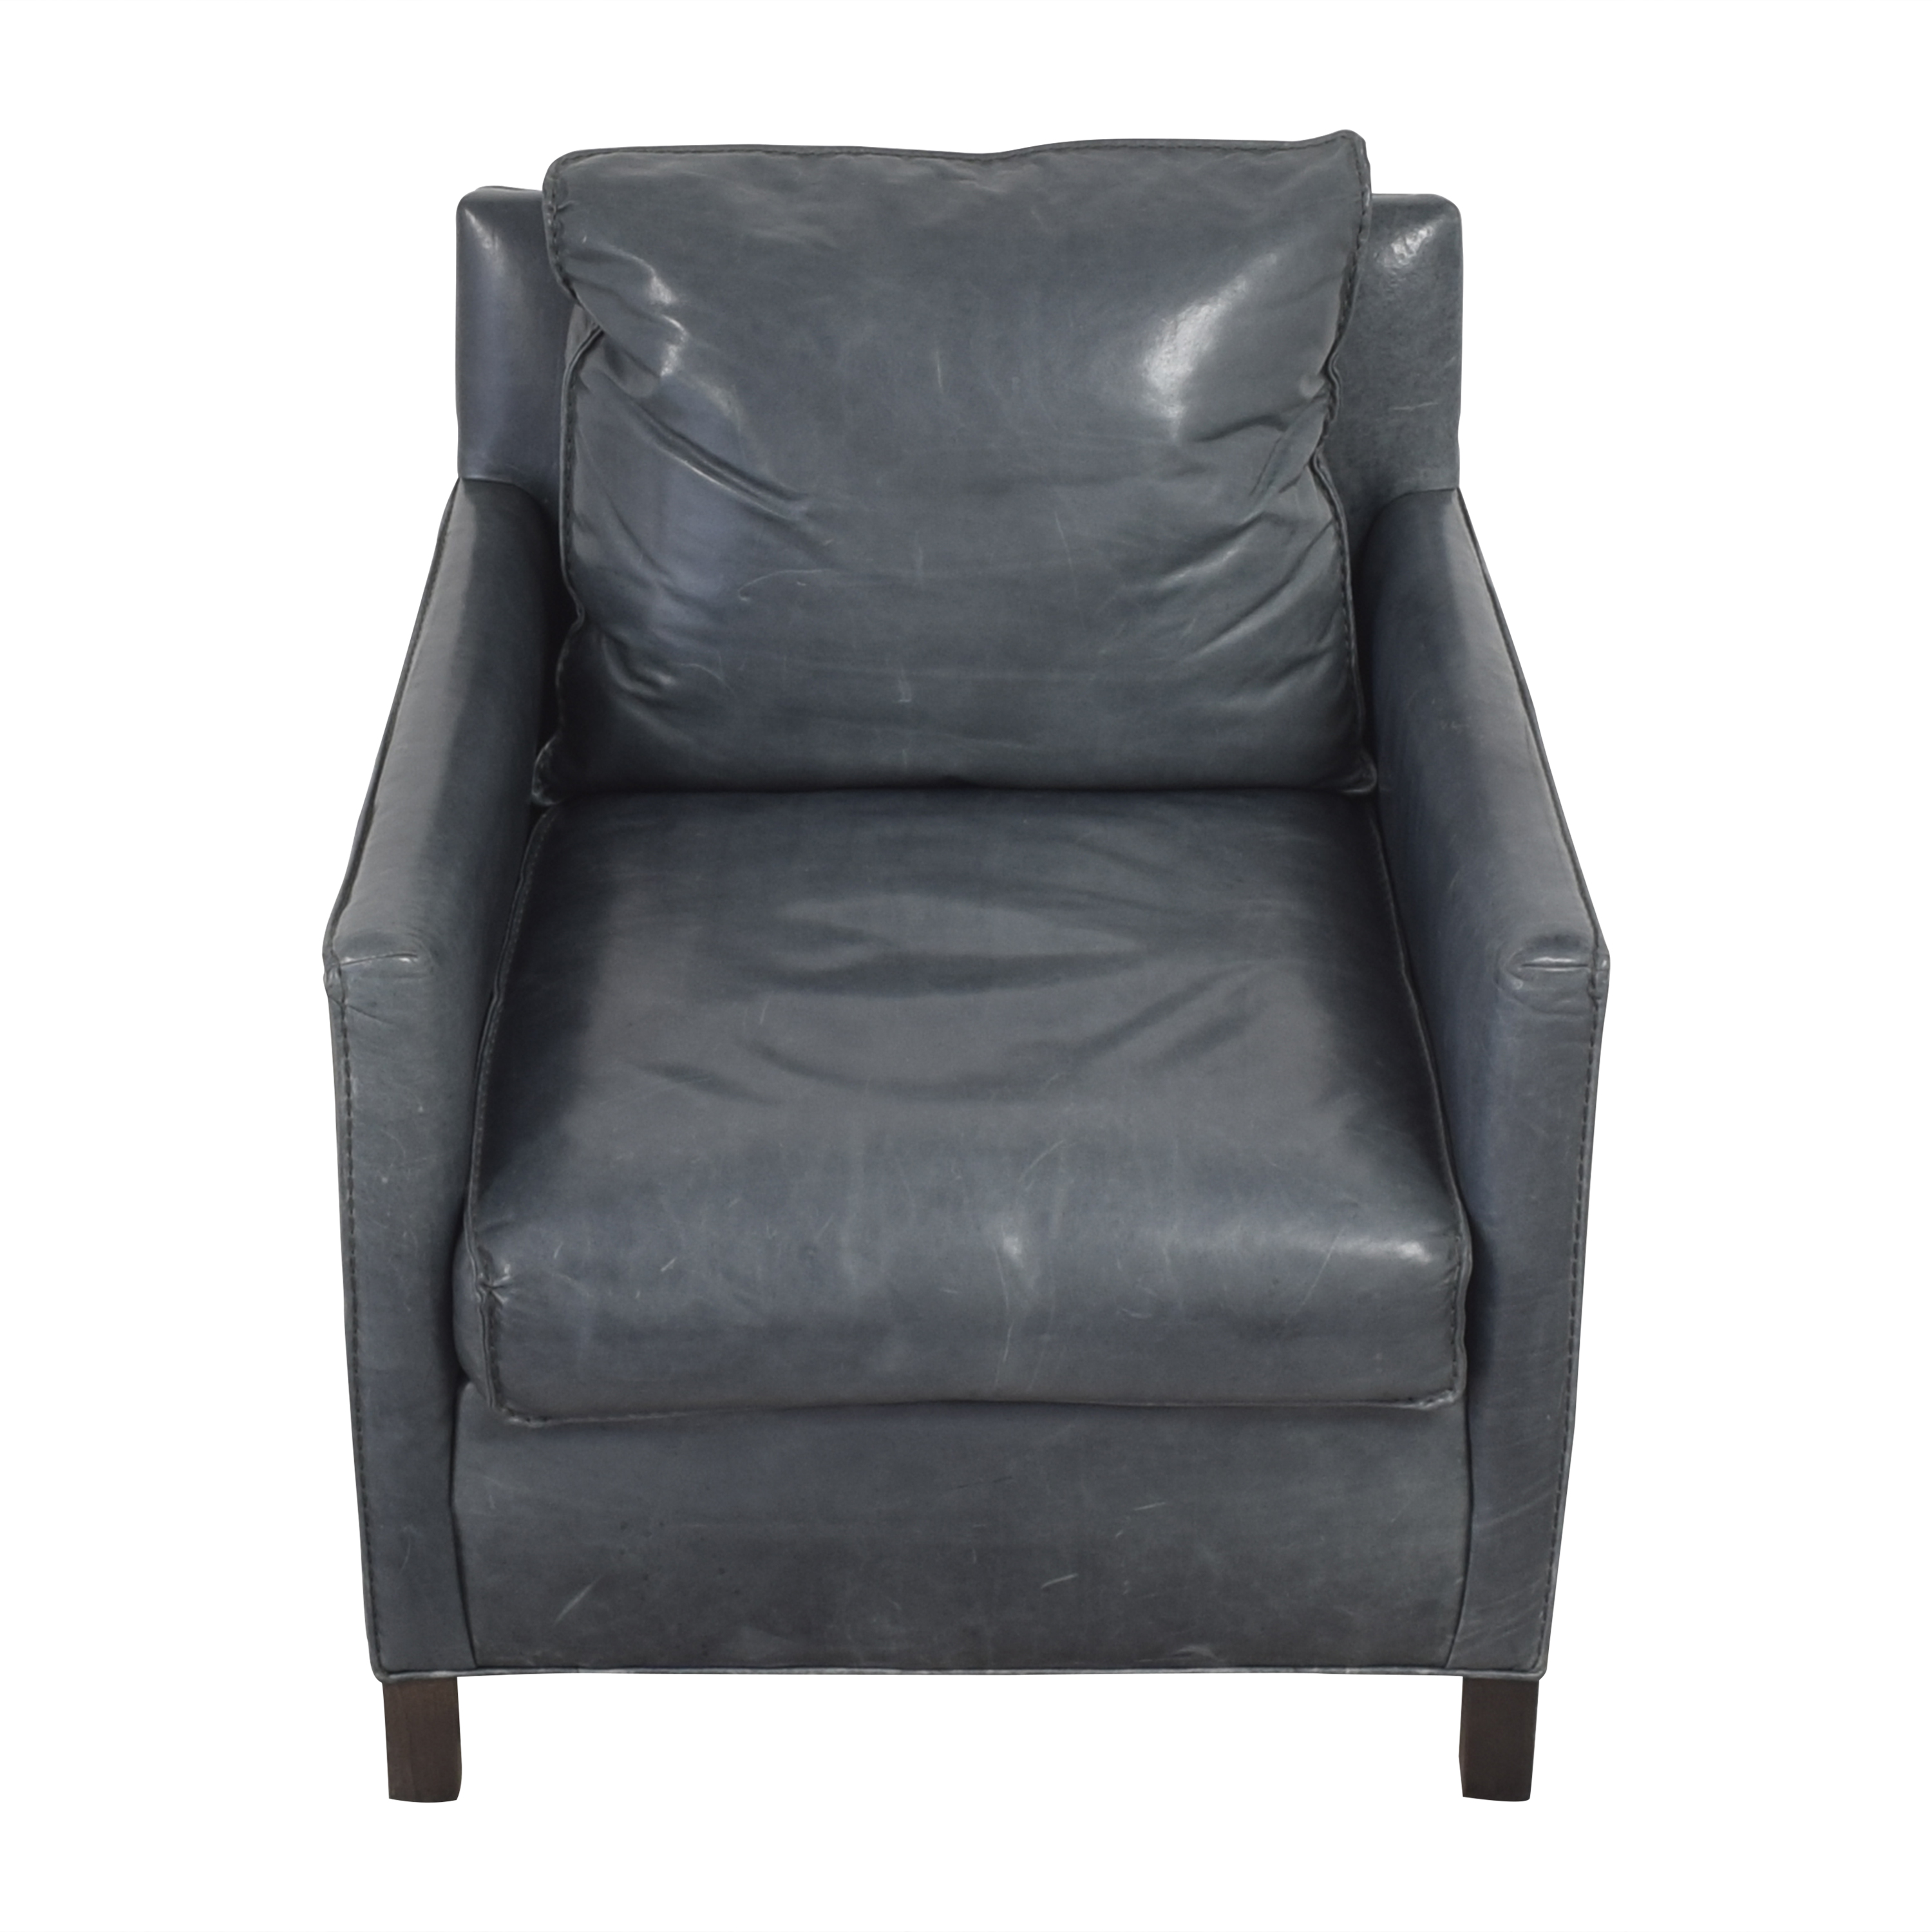 Room & Board Room & Board Bram Accent Chair on sale